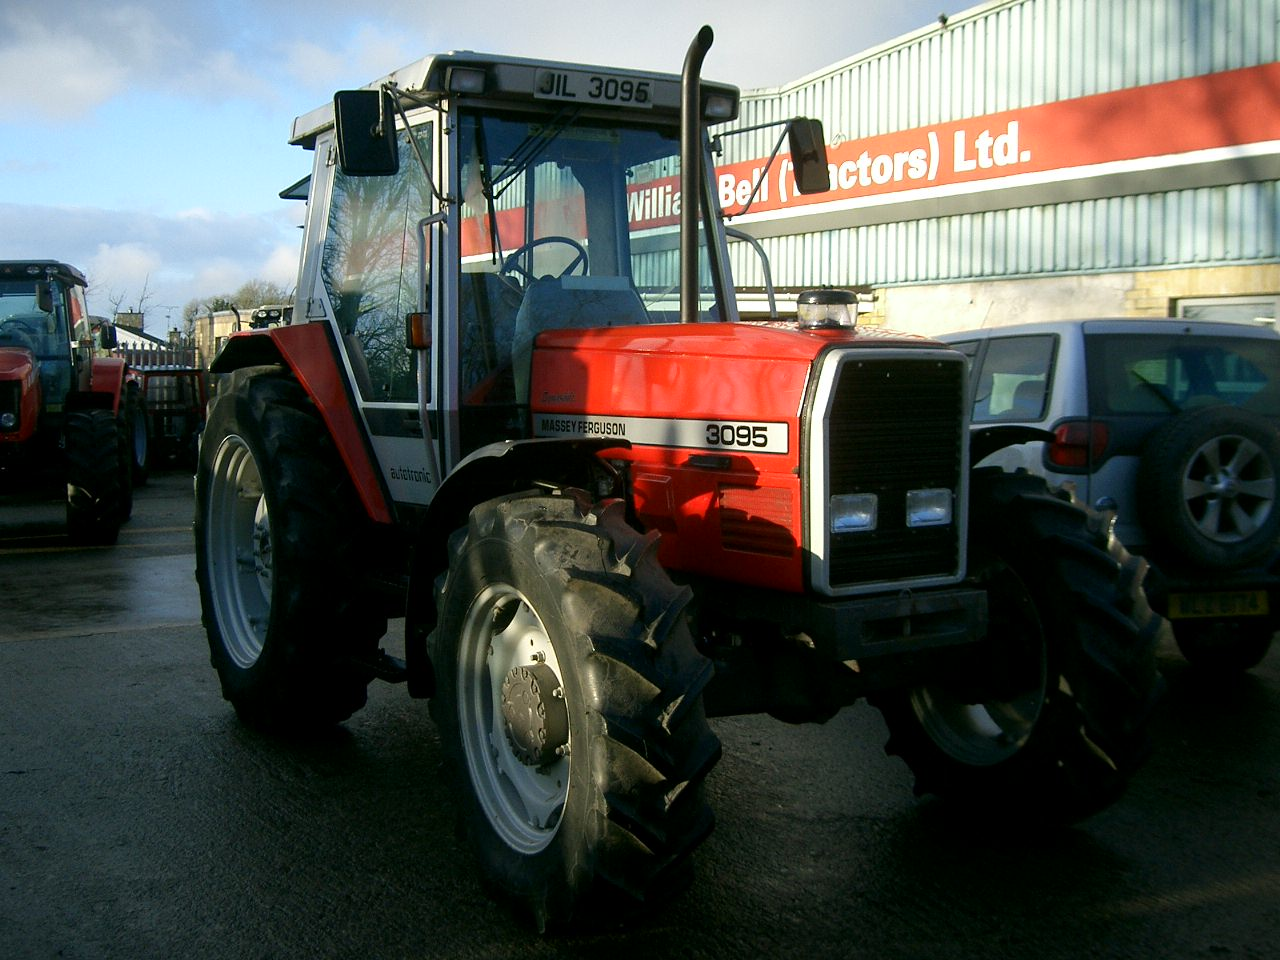 Massey ferguson 3095 photo - 1